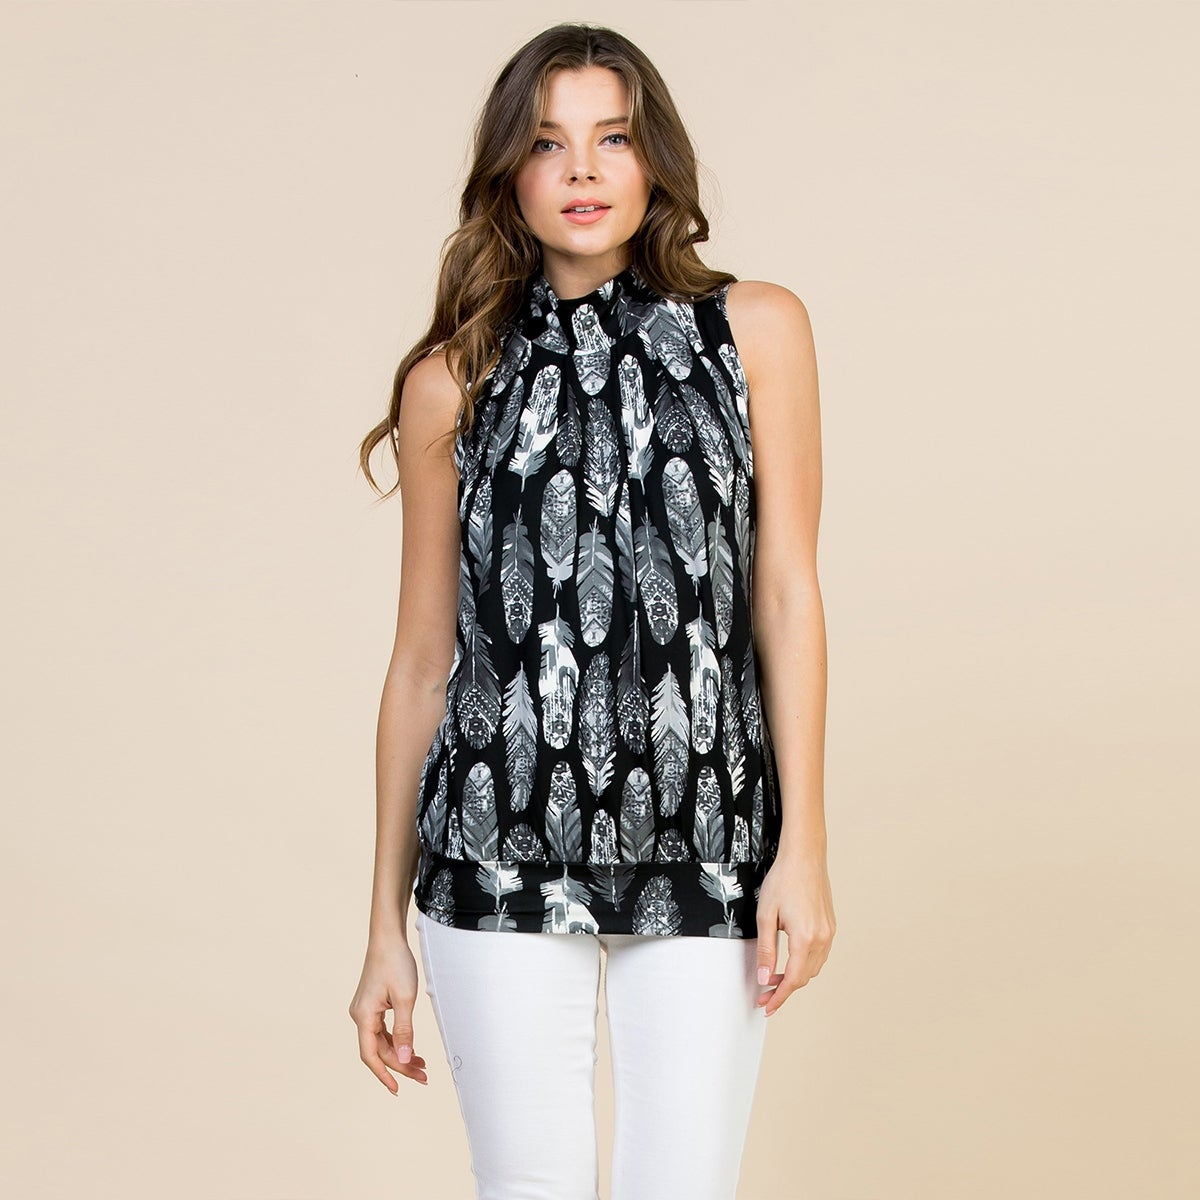 aa872817a759 Shop RIAH FASHION Women's Feather Print Mock Neck Sleeveless Top S-3X -  Free Shipping On Orders Over $45 - Overstock - 28077721